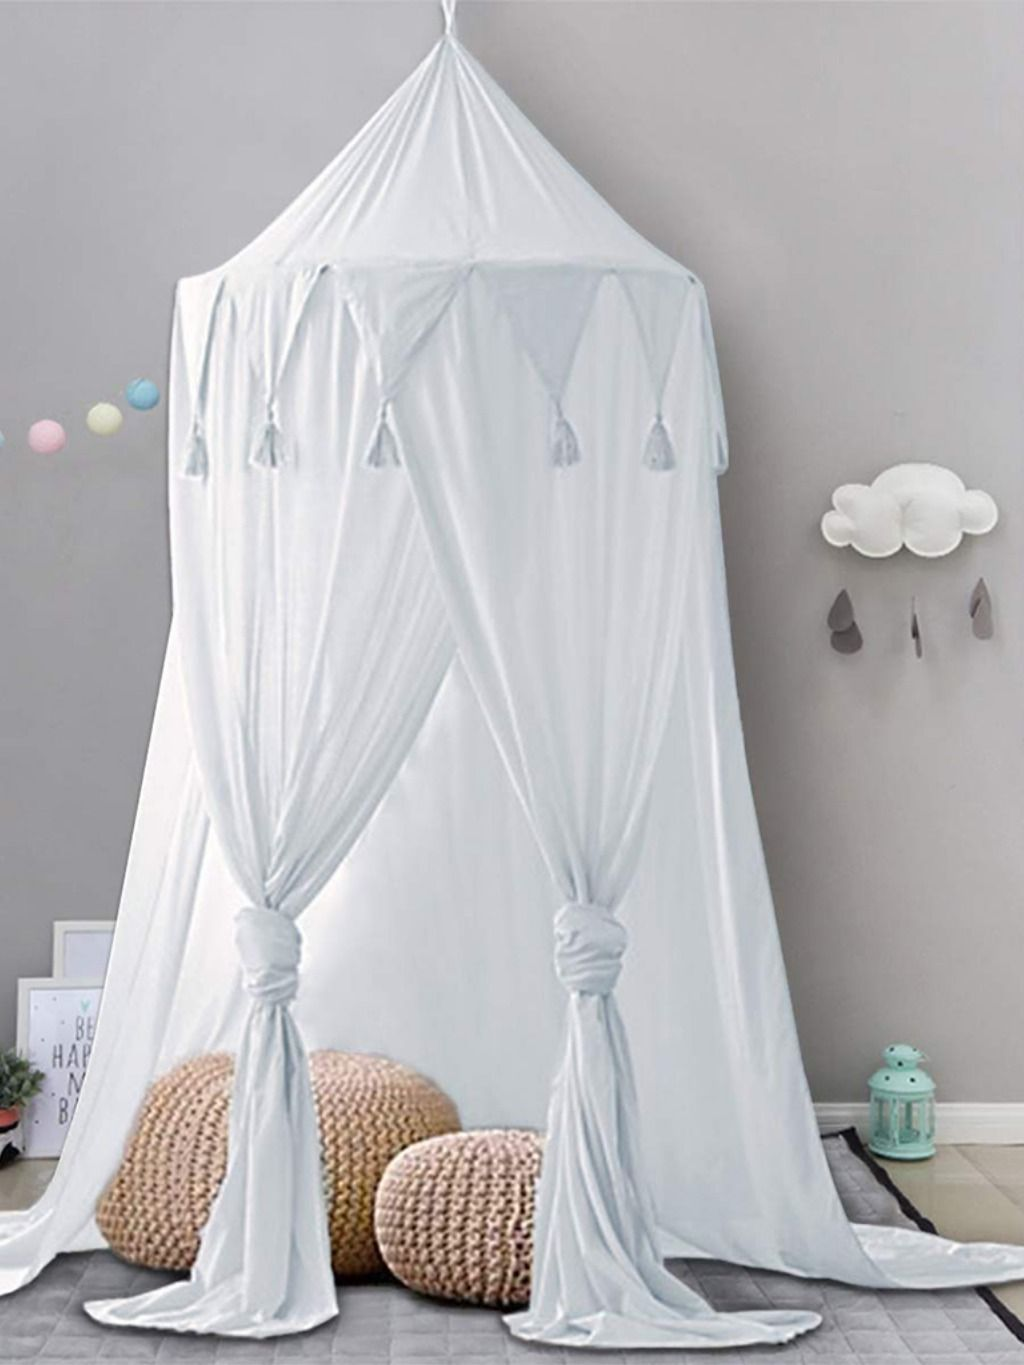 Bed Canopy Lace Mosquito Net For Kids White Bed Tent Rainbow Bedding Kid Beds